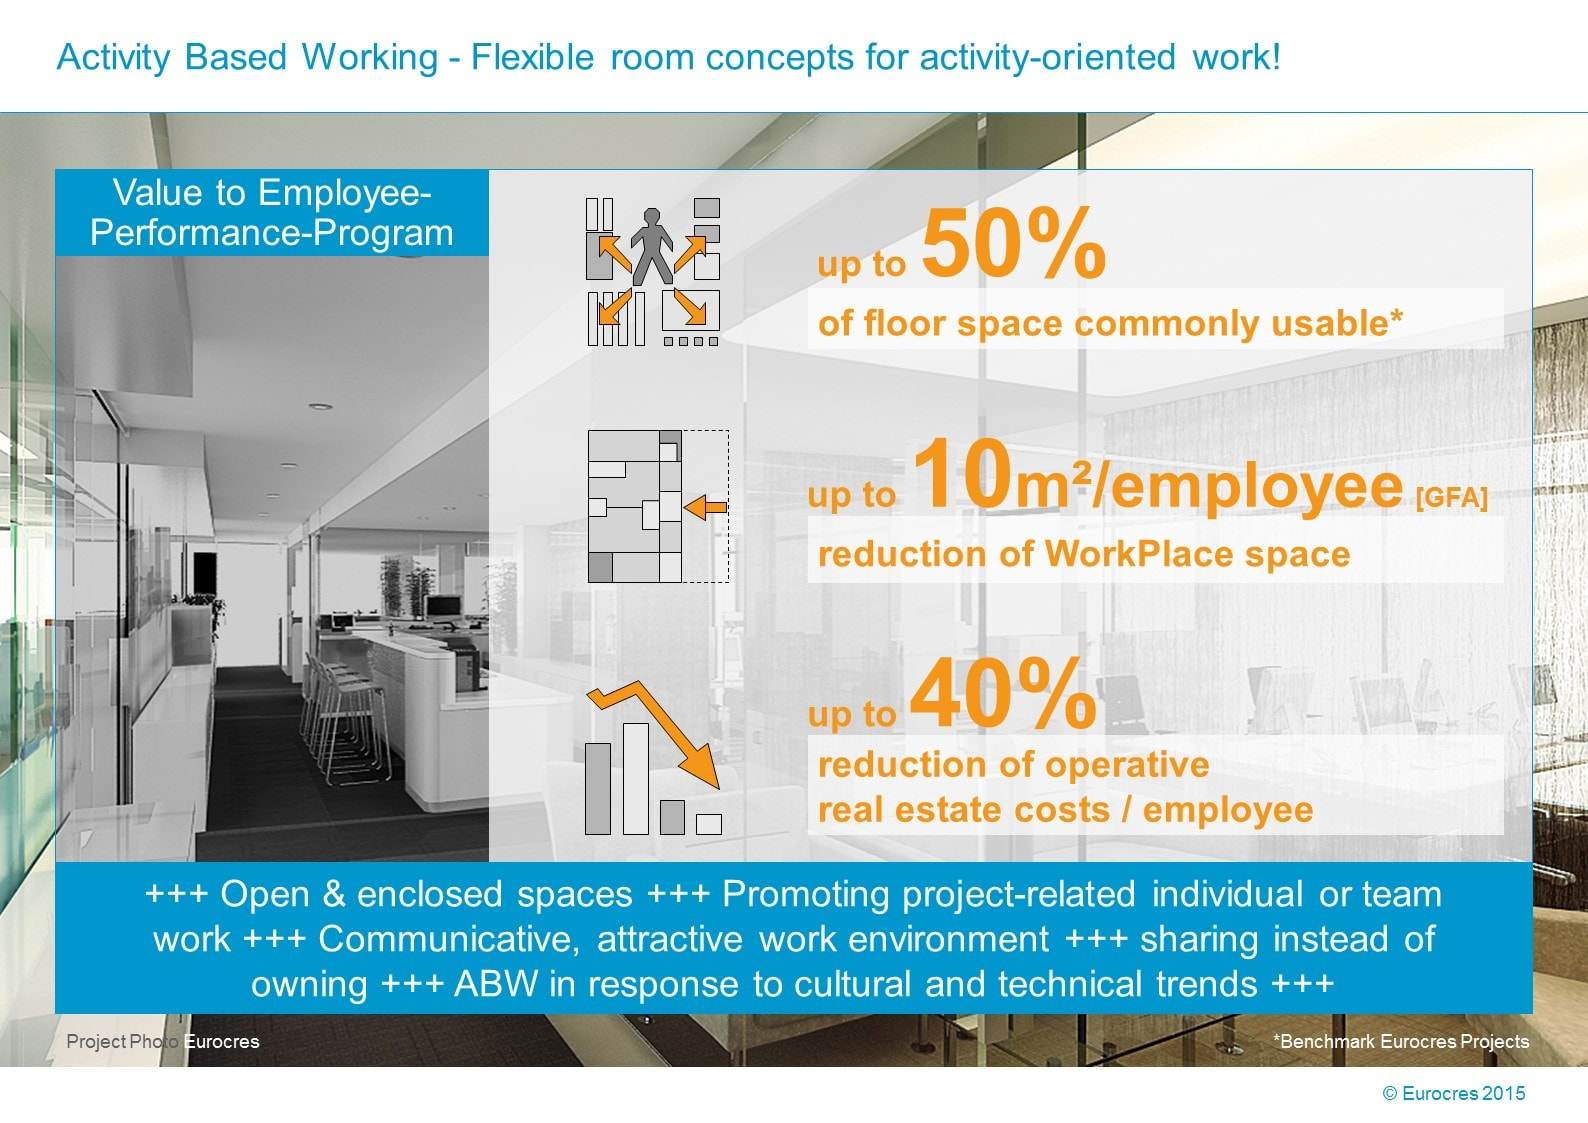 WorkPlace Flash: Activity Based Working – Flexible room concepts for activity-oriented work!